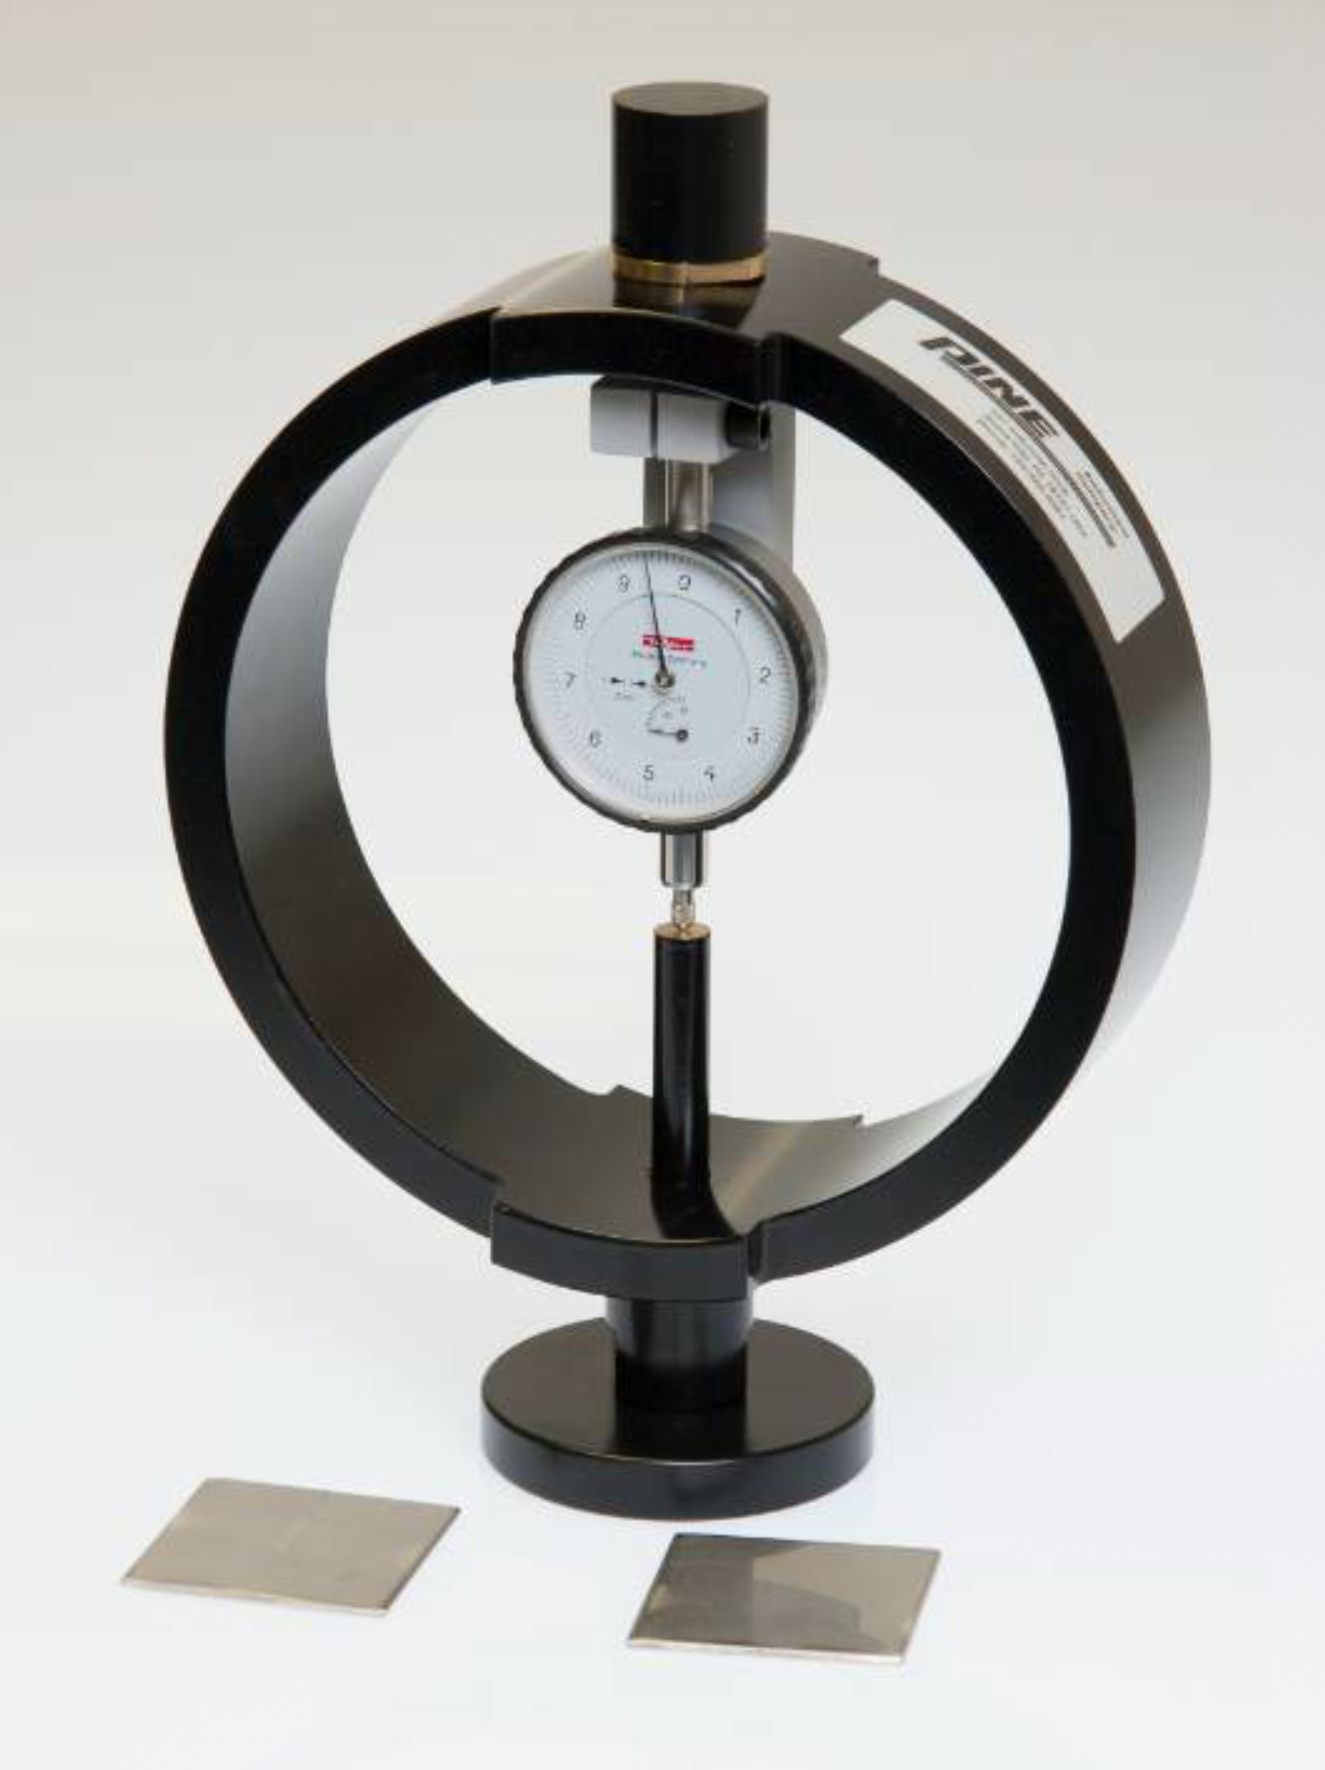 If the item is to be used for an official calibration at an AASHTO-accredited lab, the Pine proving ring calibrated on or after Jan. 1, 2018 must be calibrated by an ISO 17025-certified lab for calibrating force applicable force measurement devices. Pine field technicians will carry devices that comply with AASHTO R18.